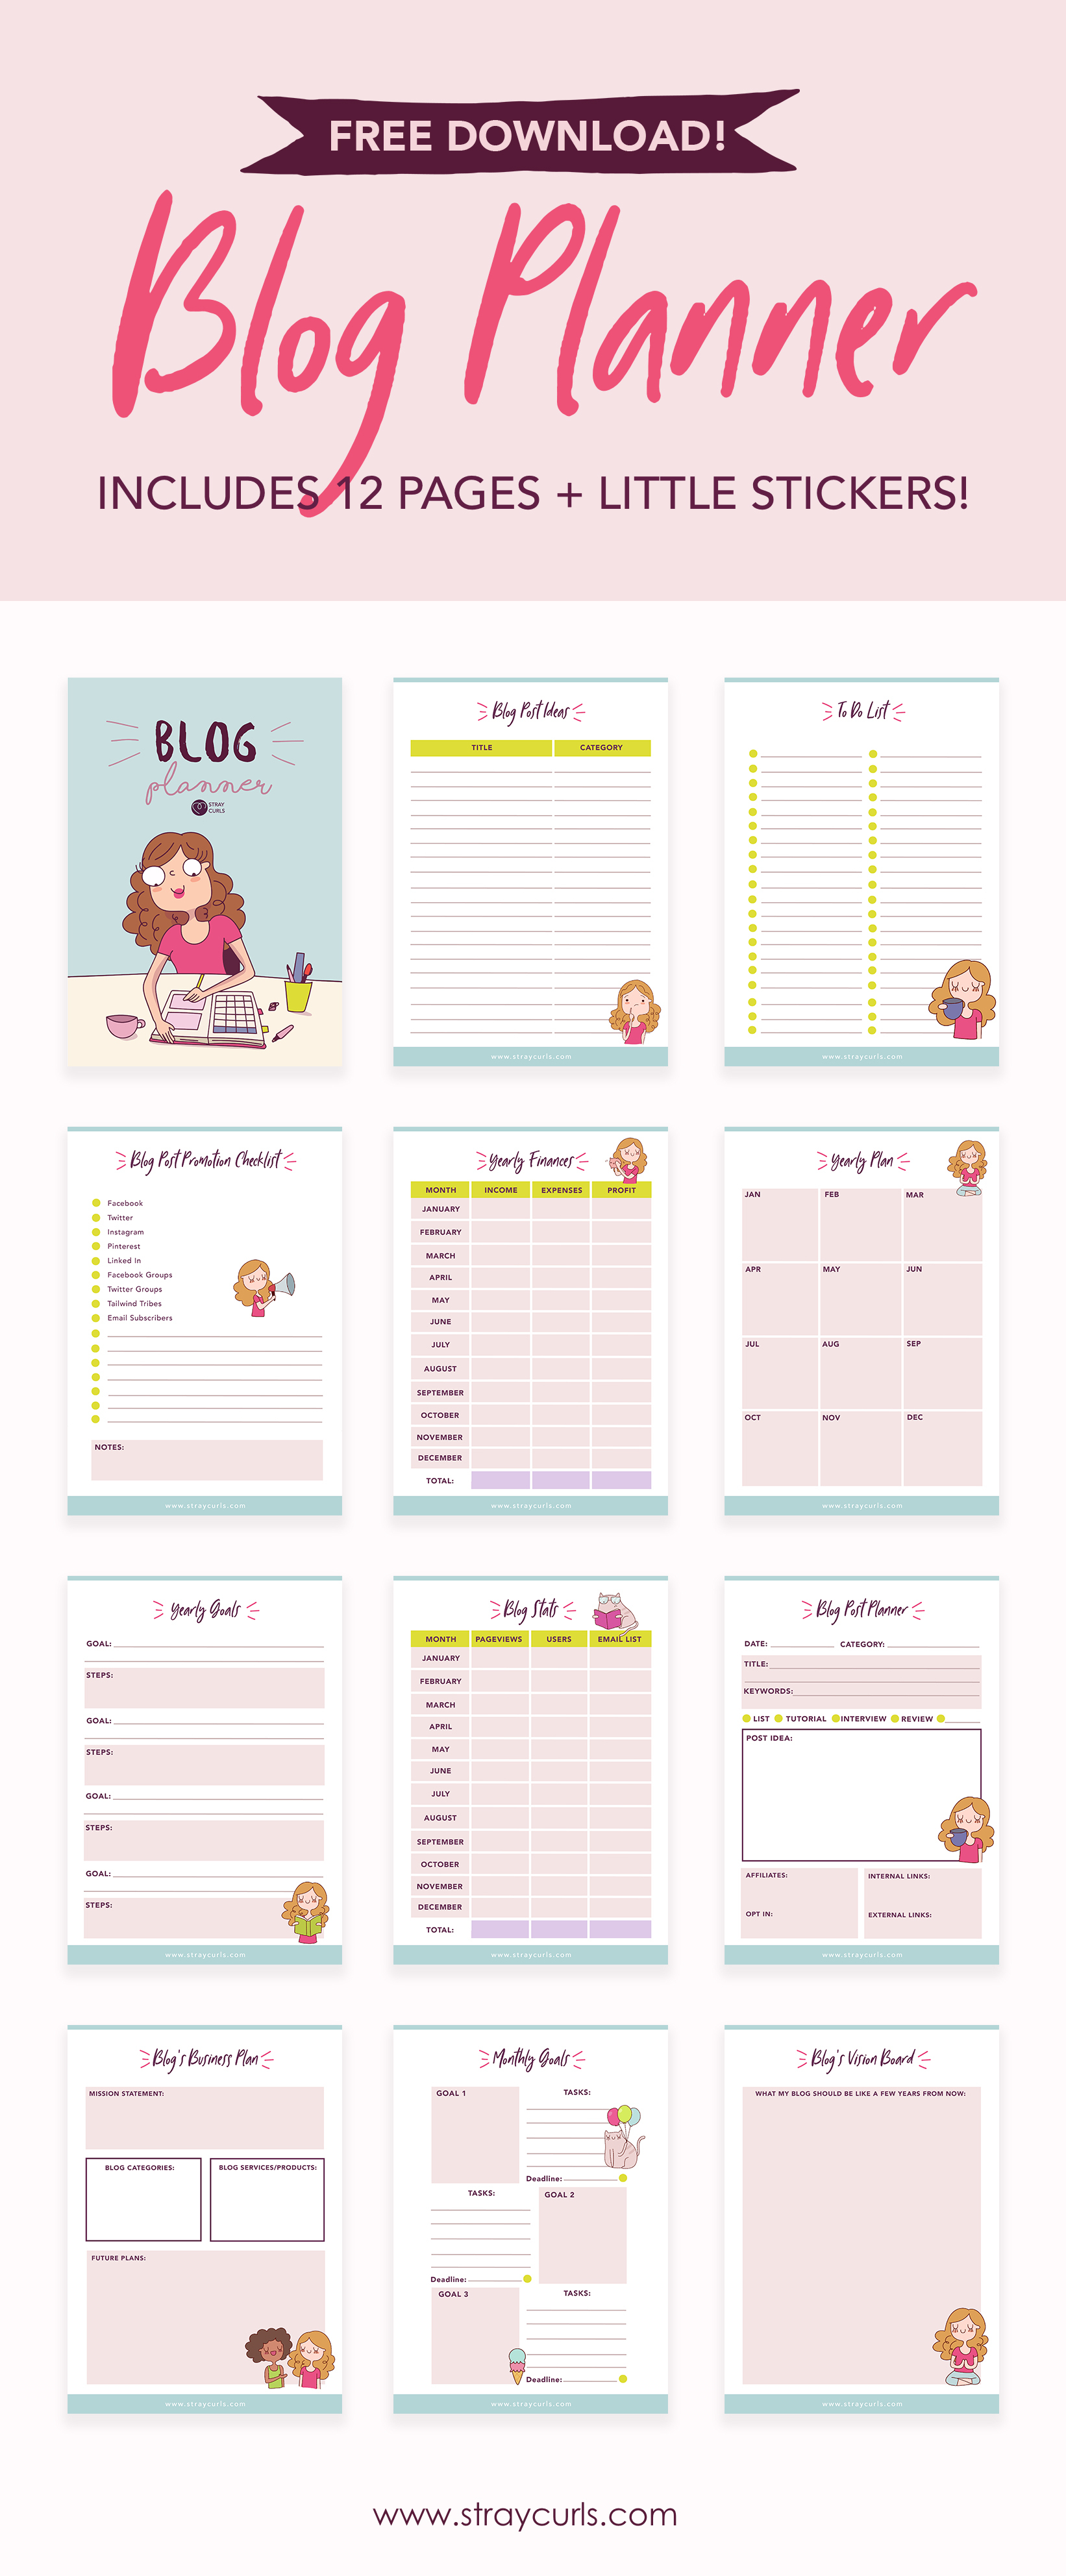 Free Download: 12 Page 2019 Blog Planner - Stray Curls - Free Printable Blog Planner